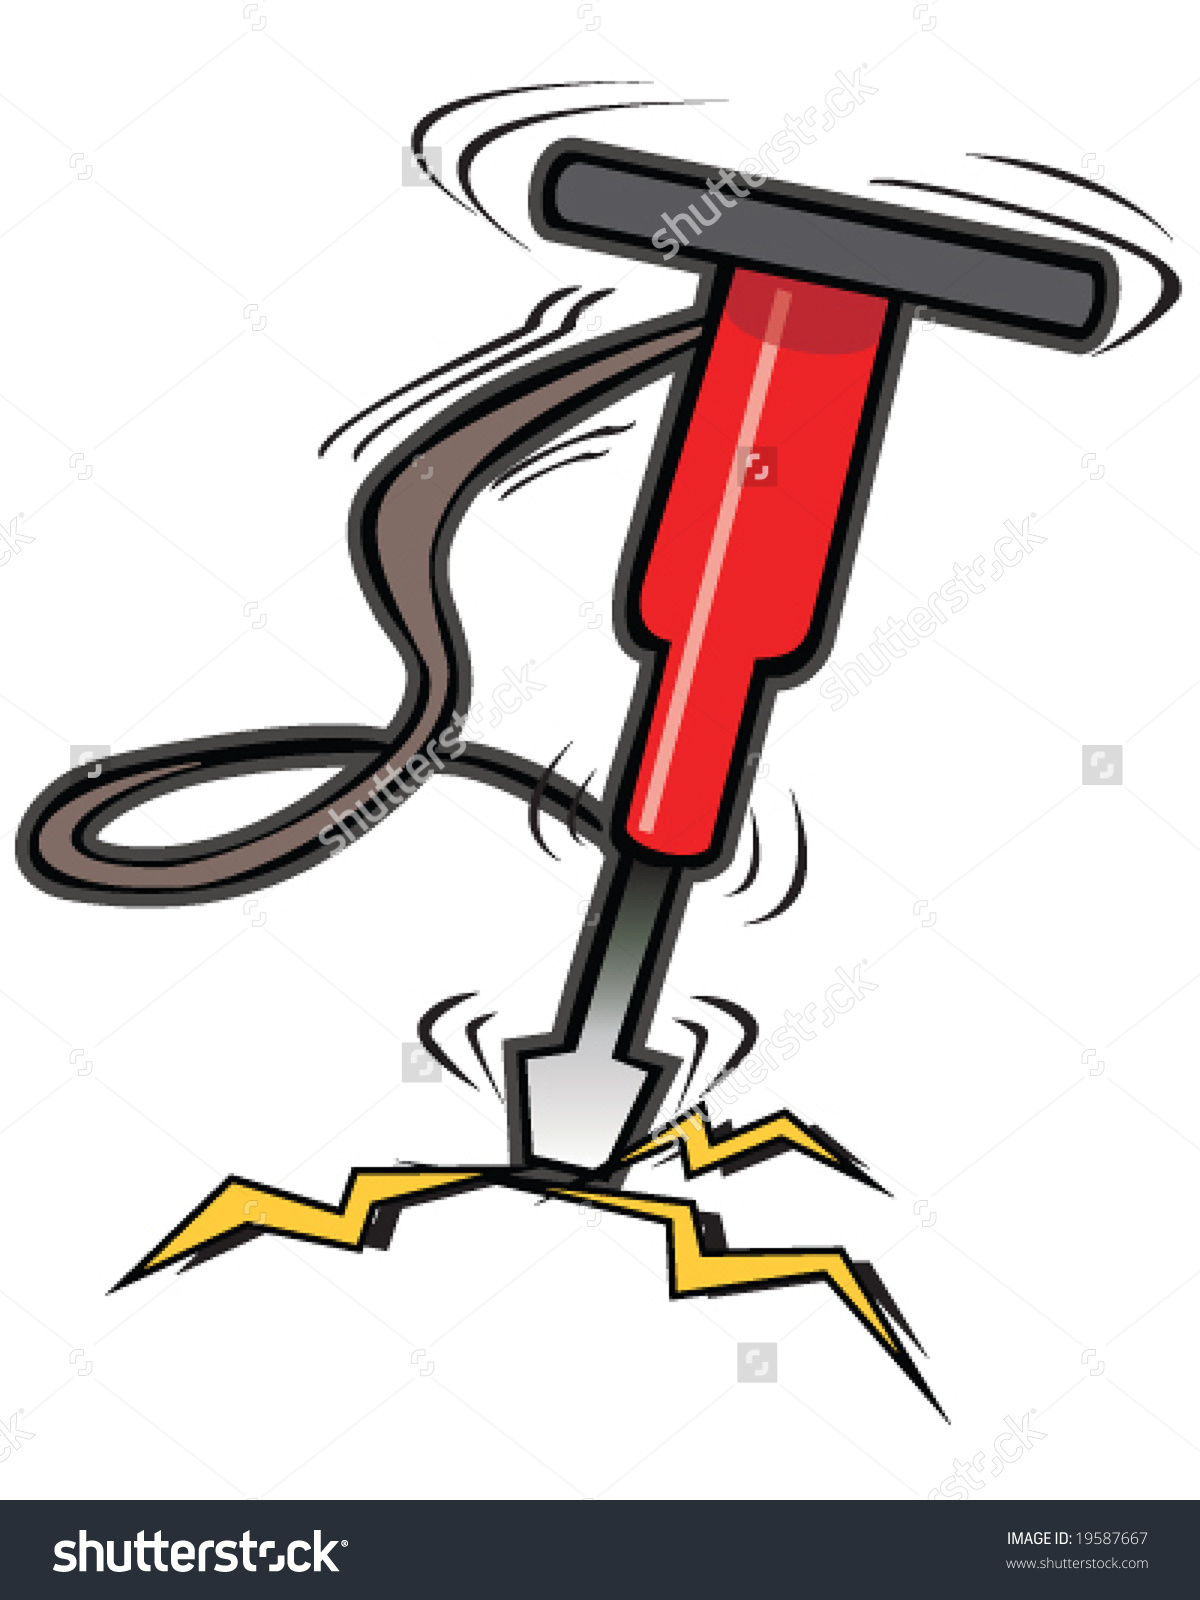 Hammer Breaking Rock Stock Vectors & Vector Clip Art.